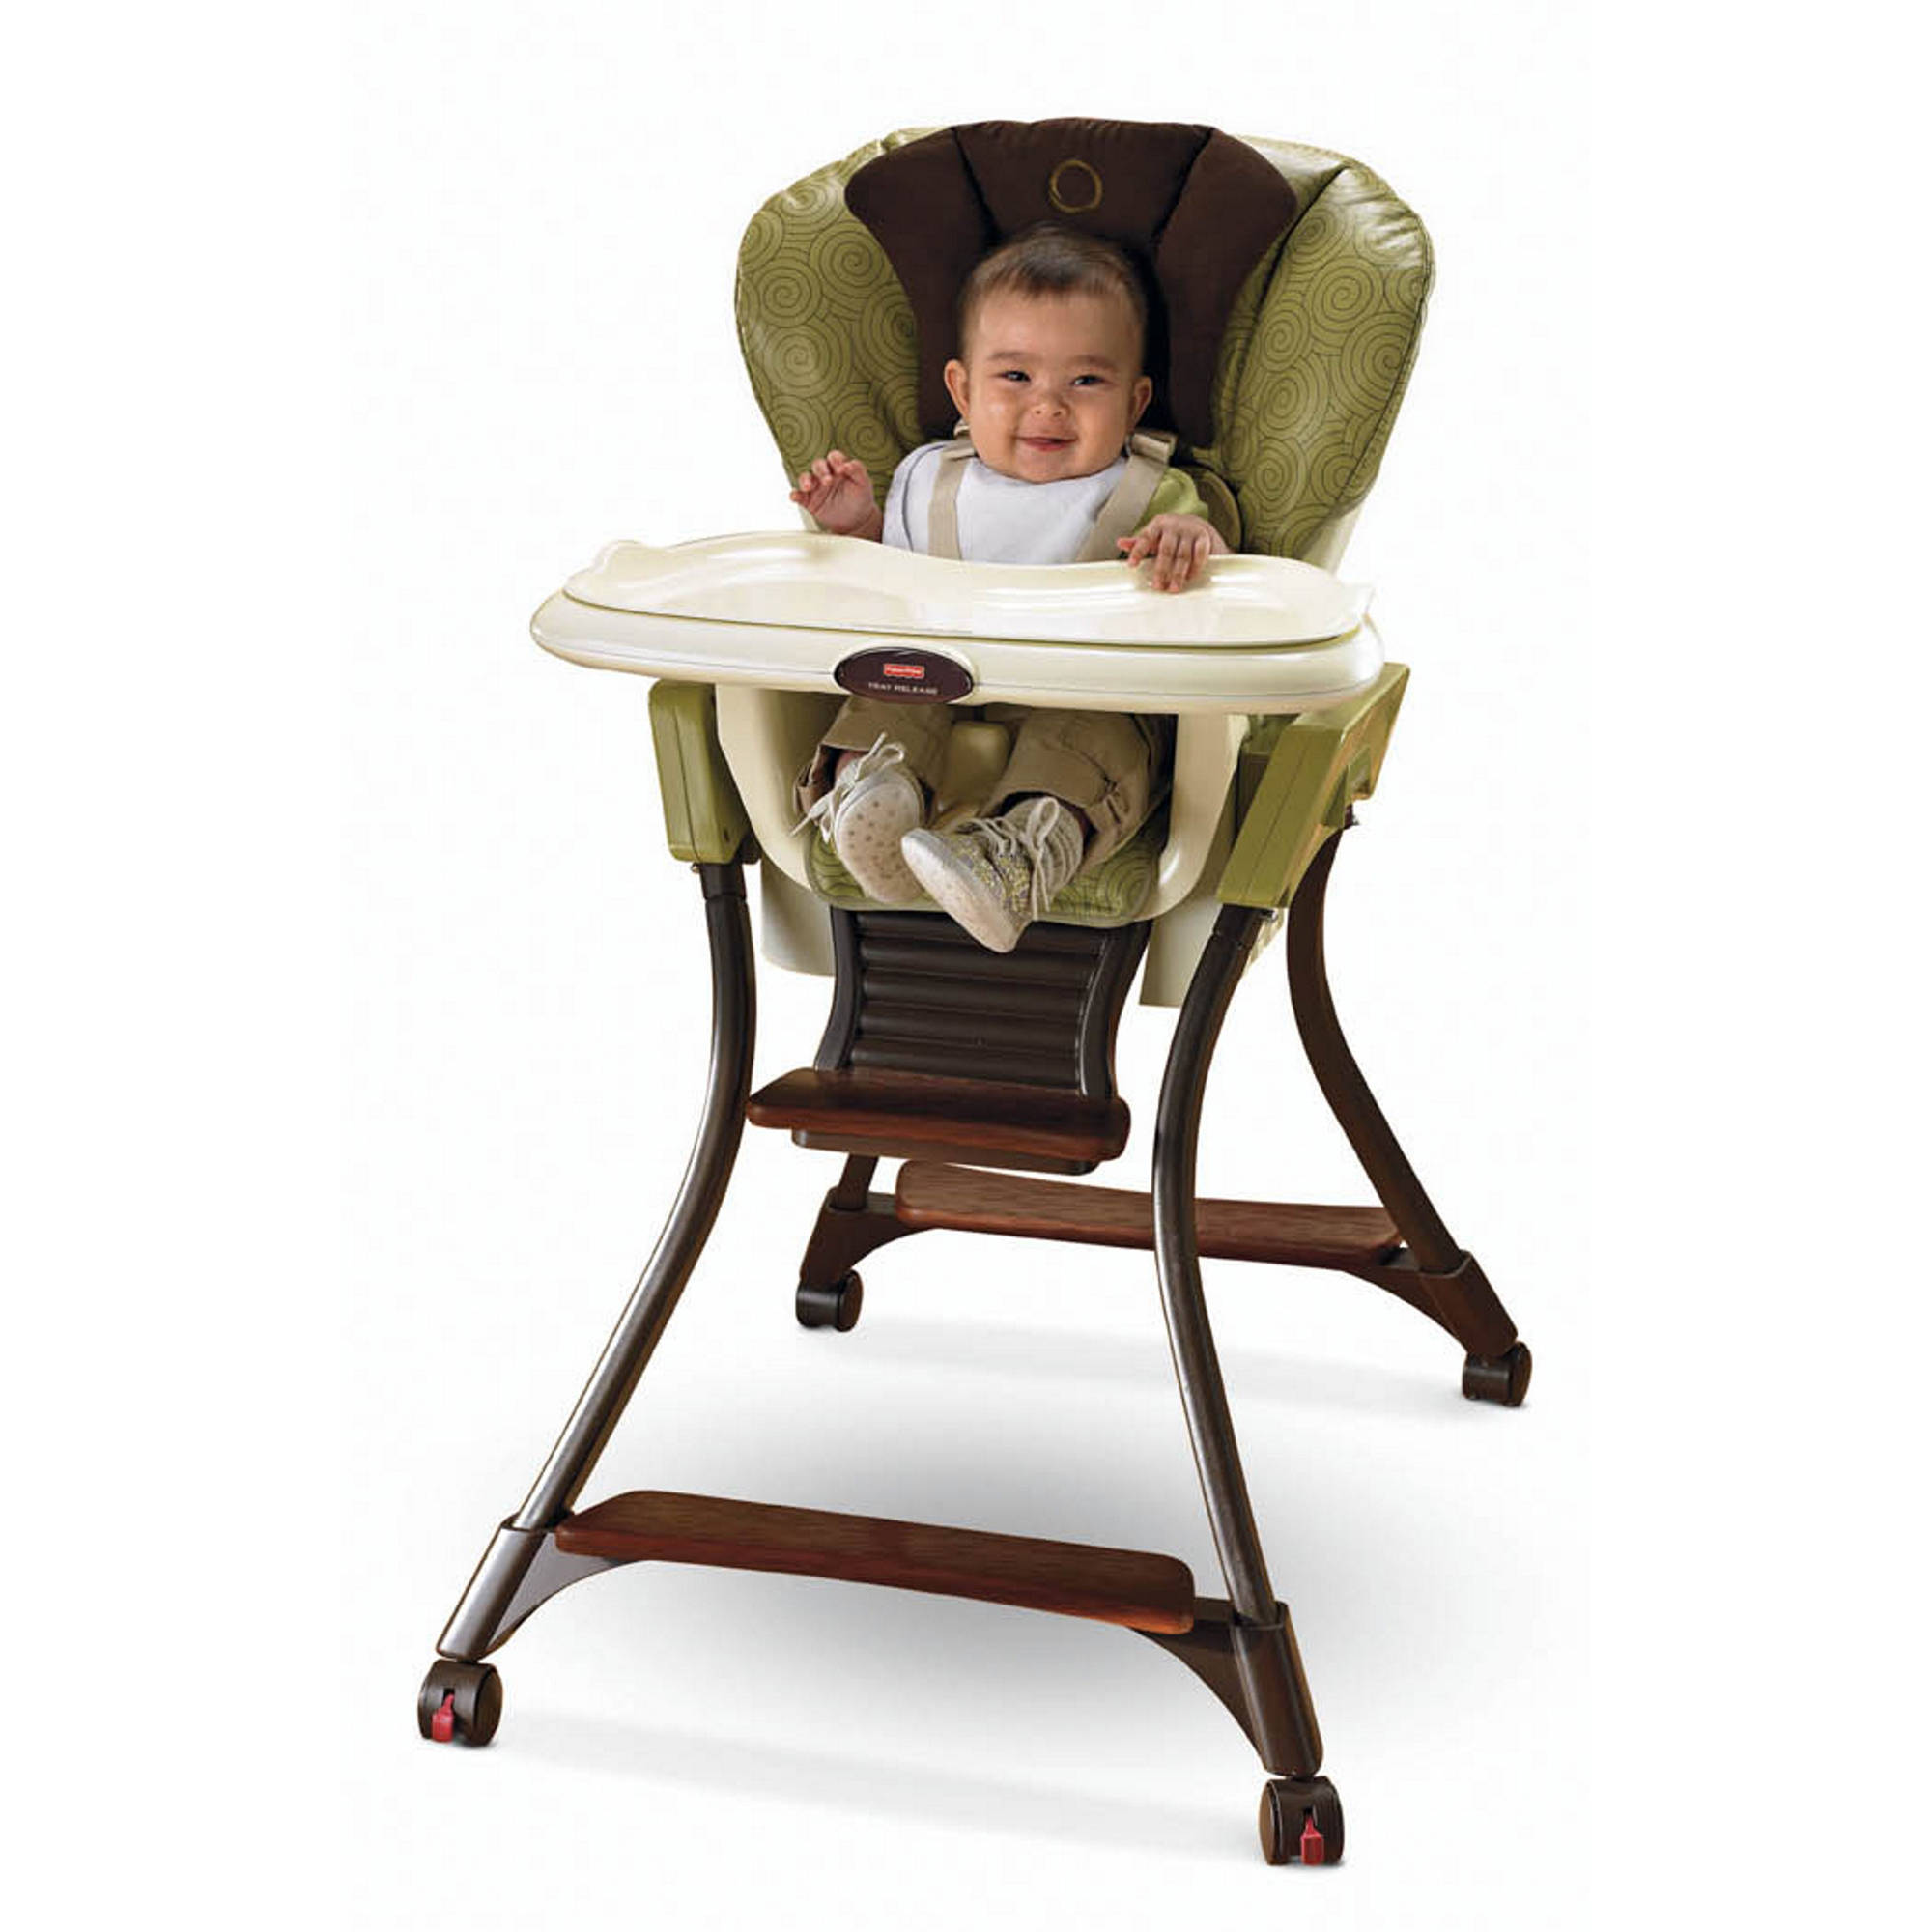 Chairs For Babies Top 10 Best High Chairs For Babies Shopcalypse